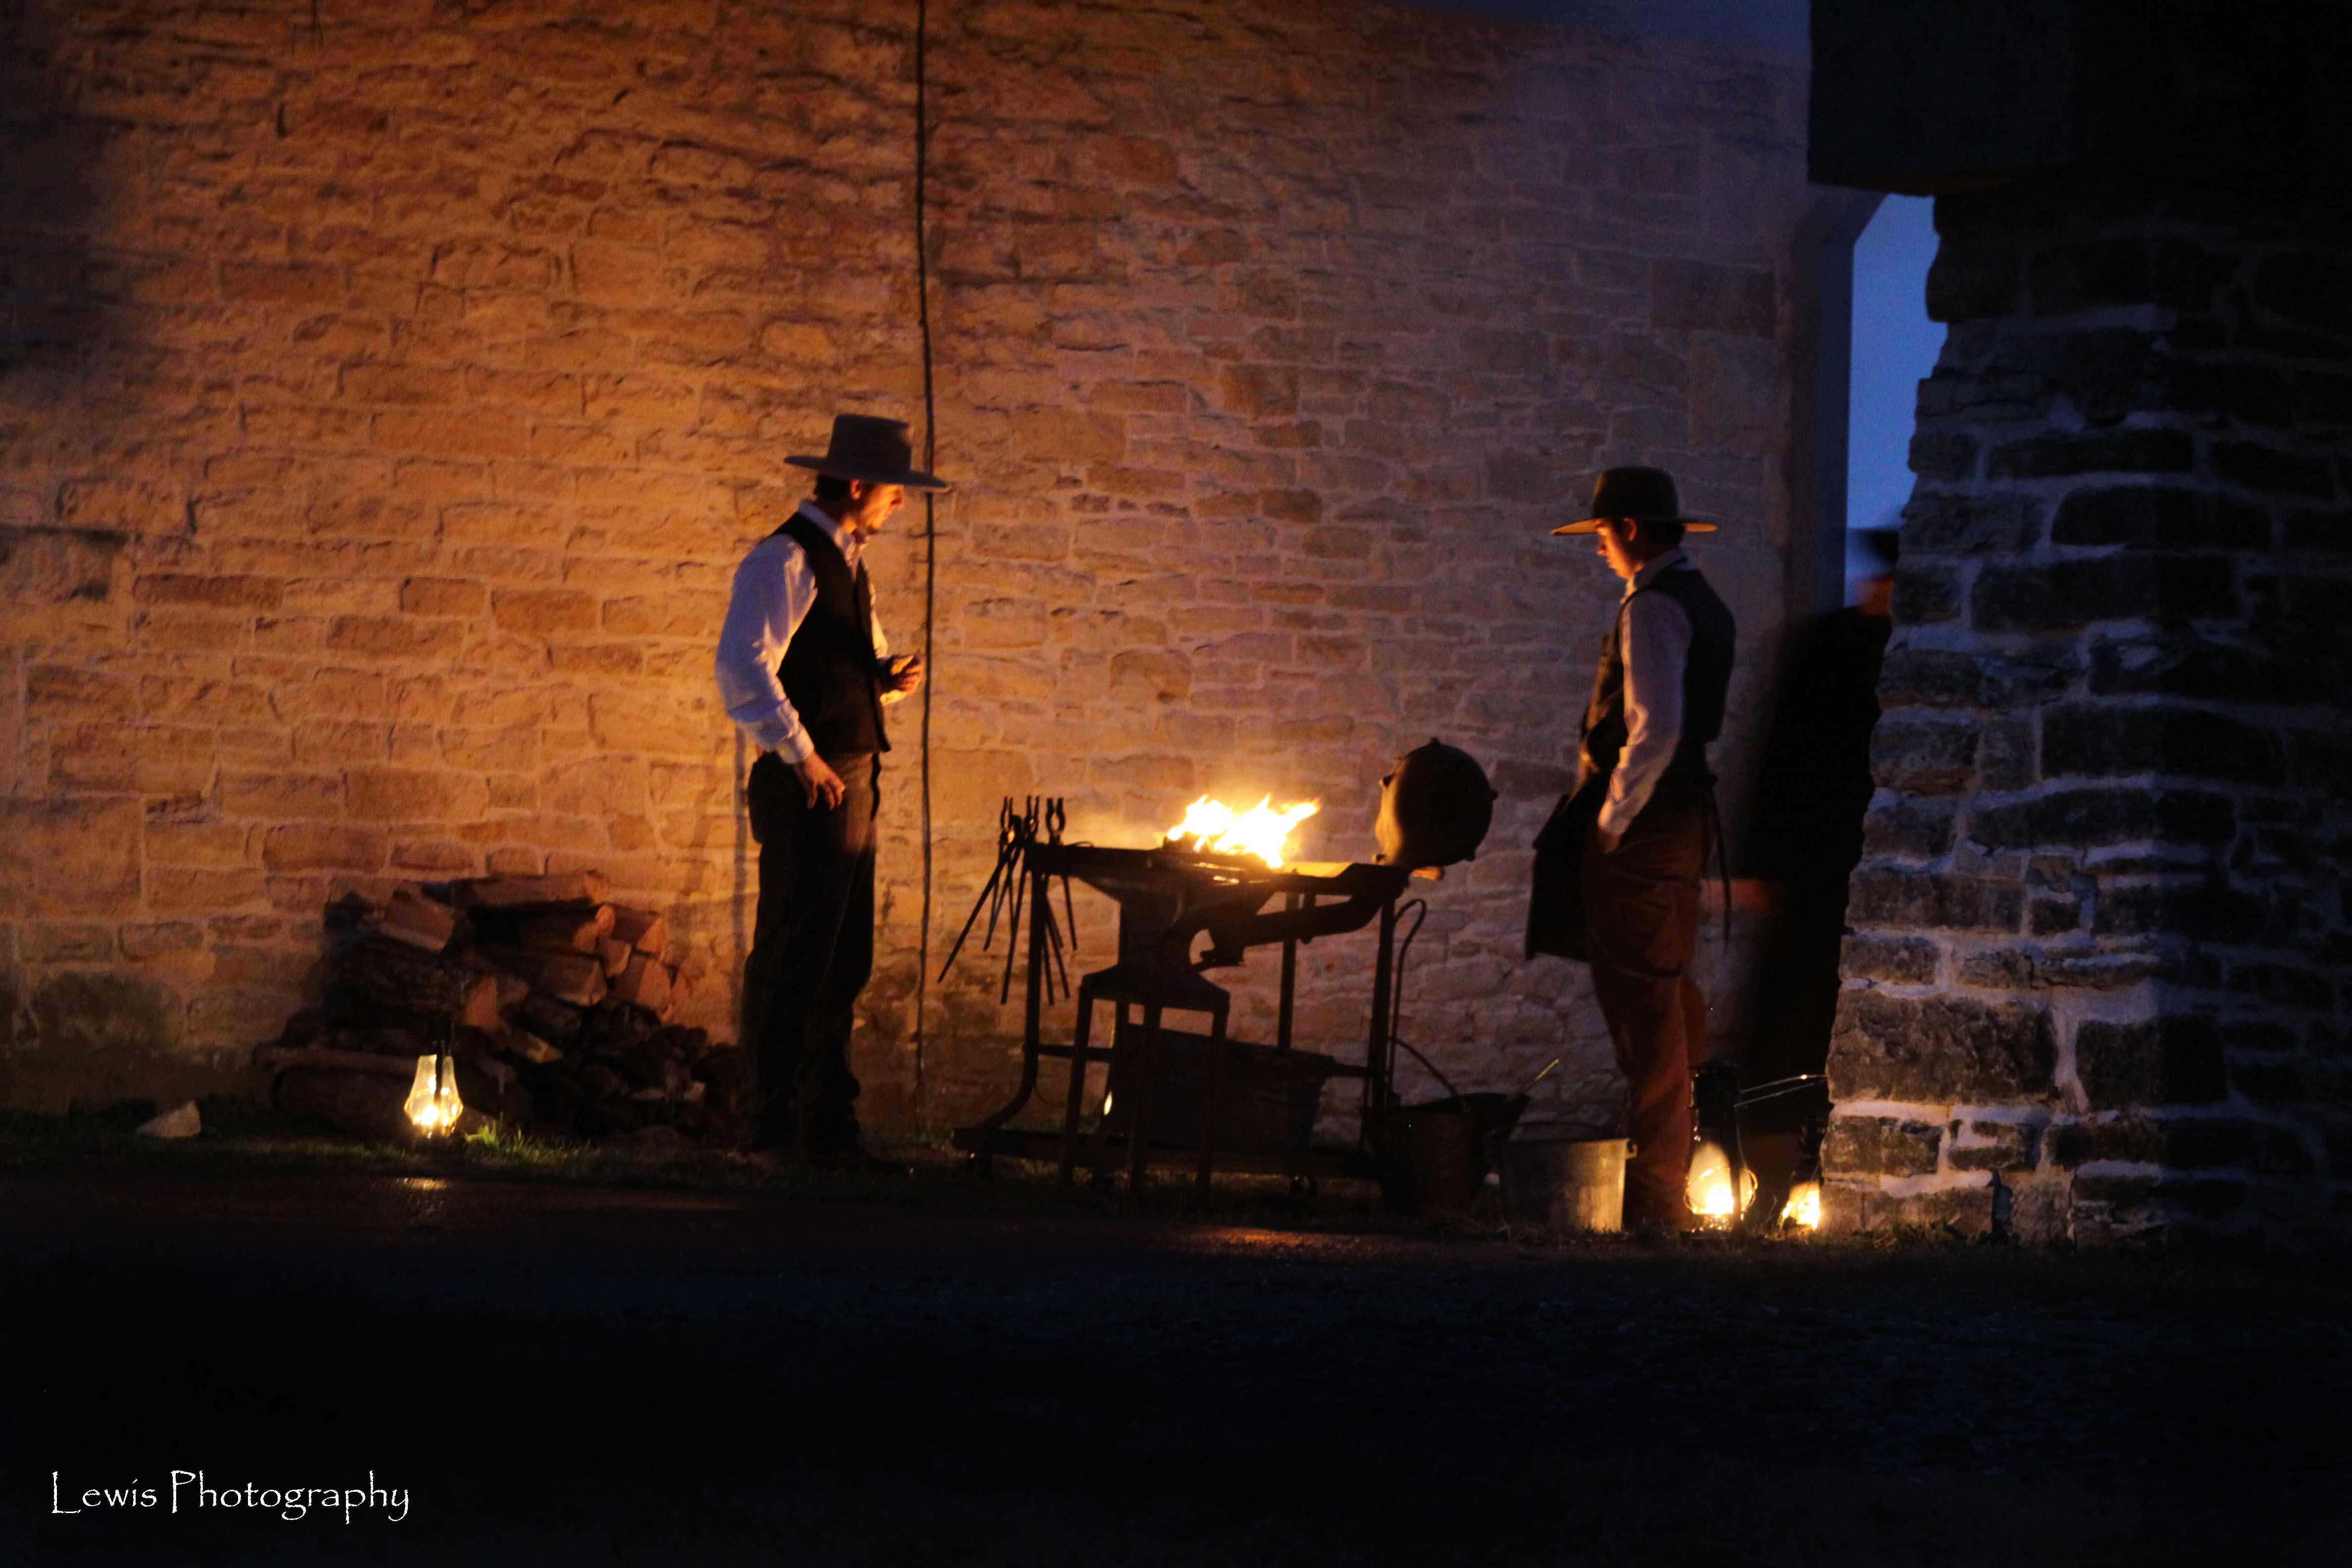 cowboys working hot iron in the dark with lanterns lit